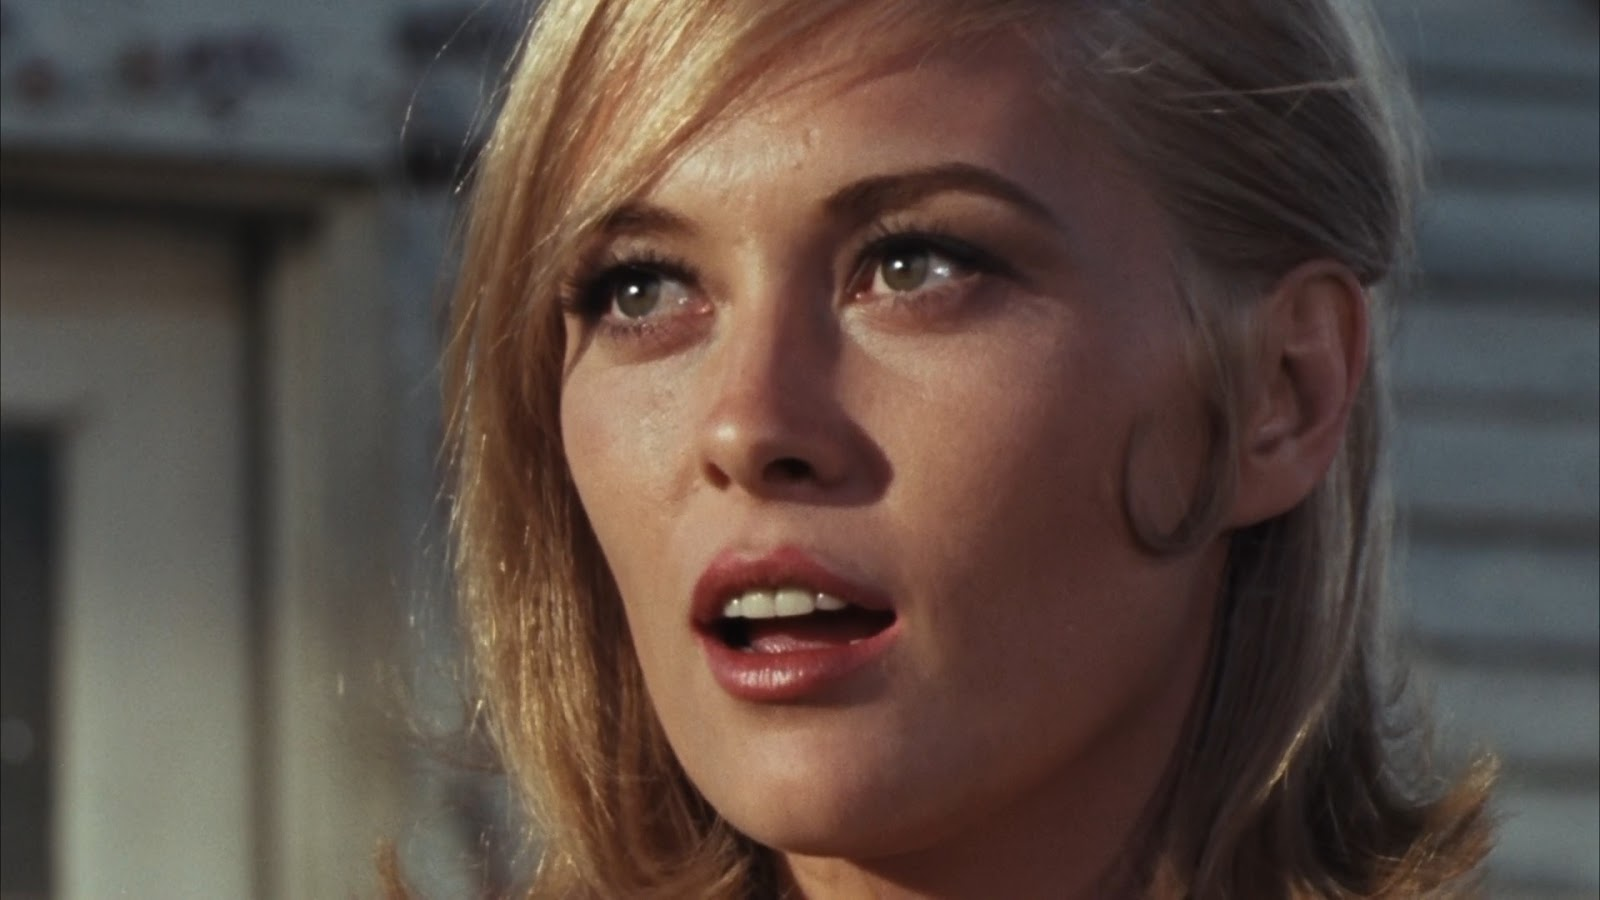 Bonnie and Clyde 1967 Dual BRRip 720 Zippy